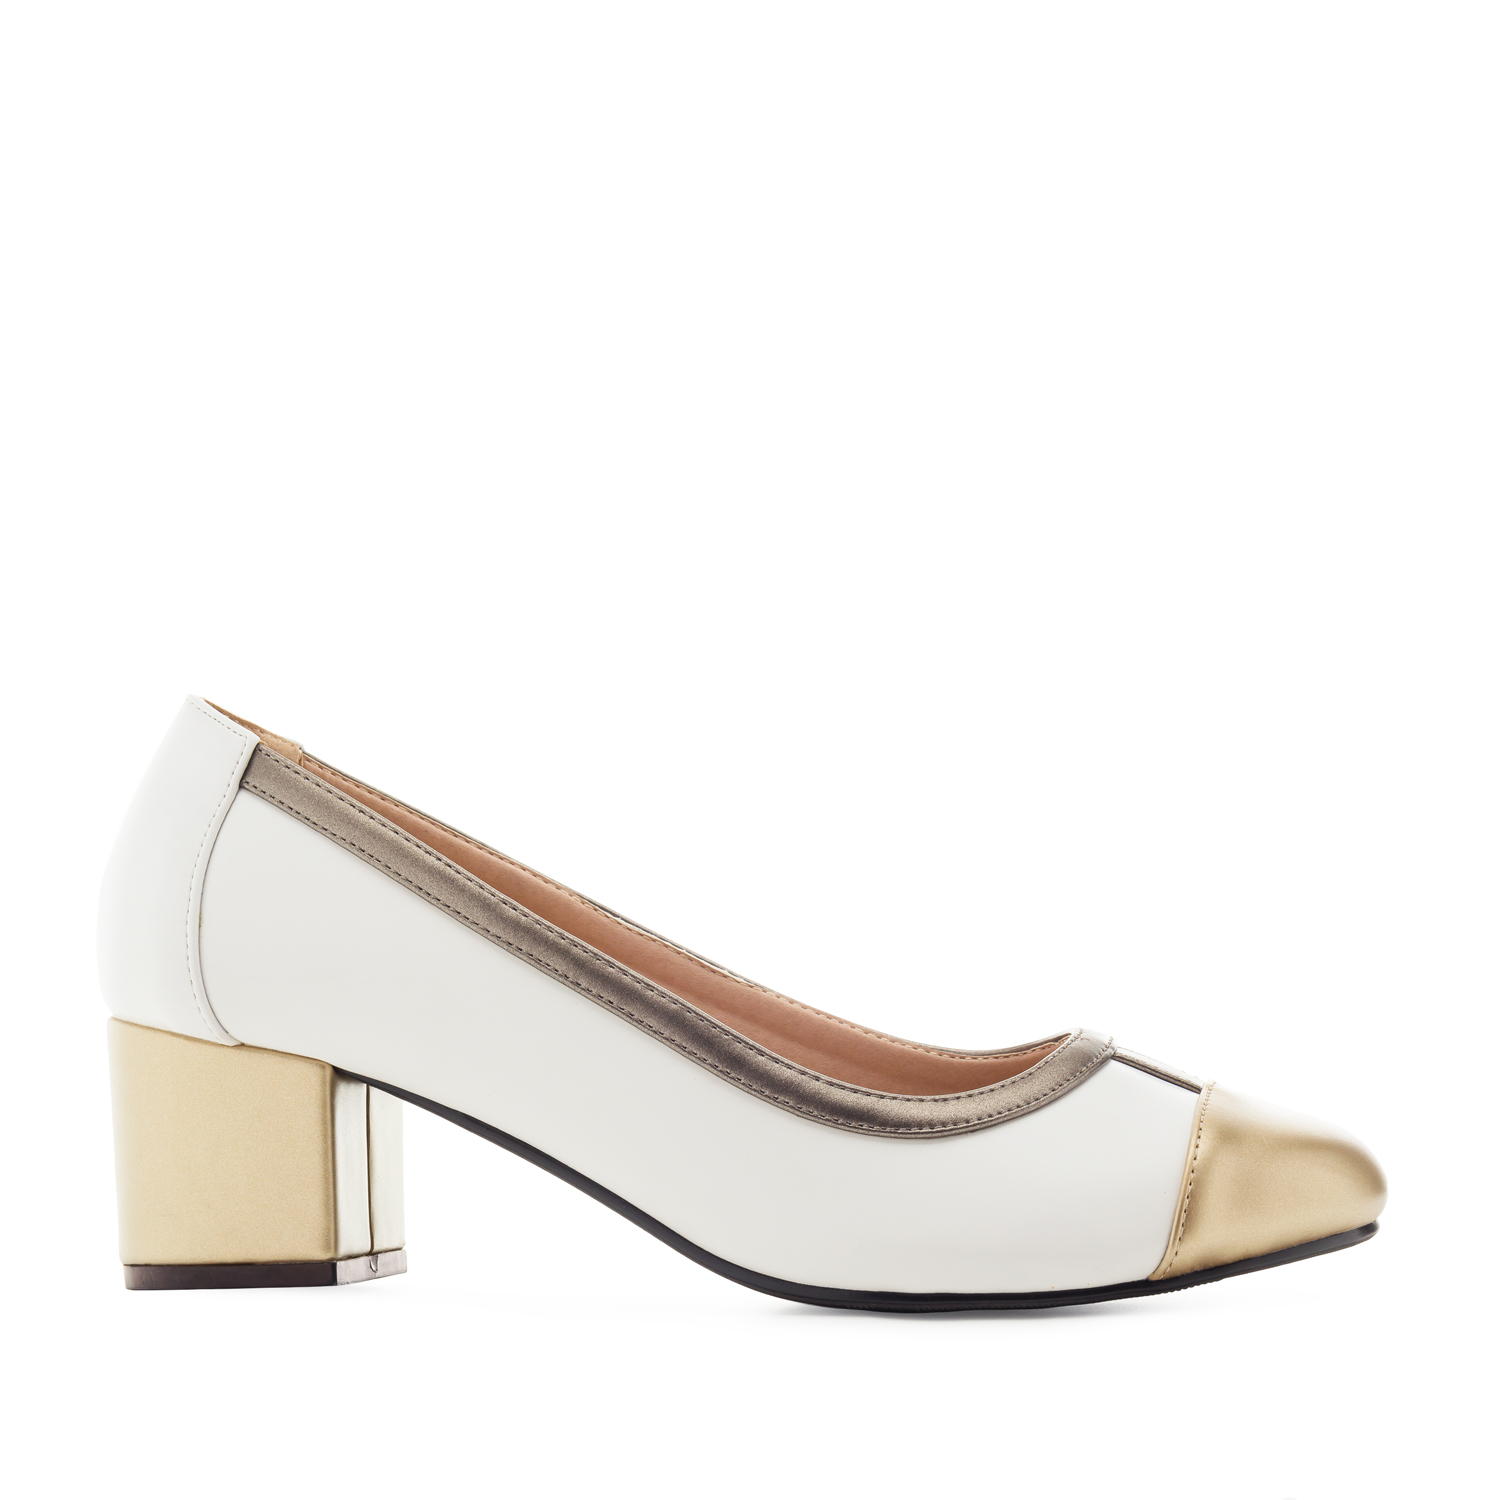 Toe-Cap Heeled Shoes in White faux Leather